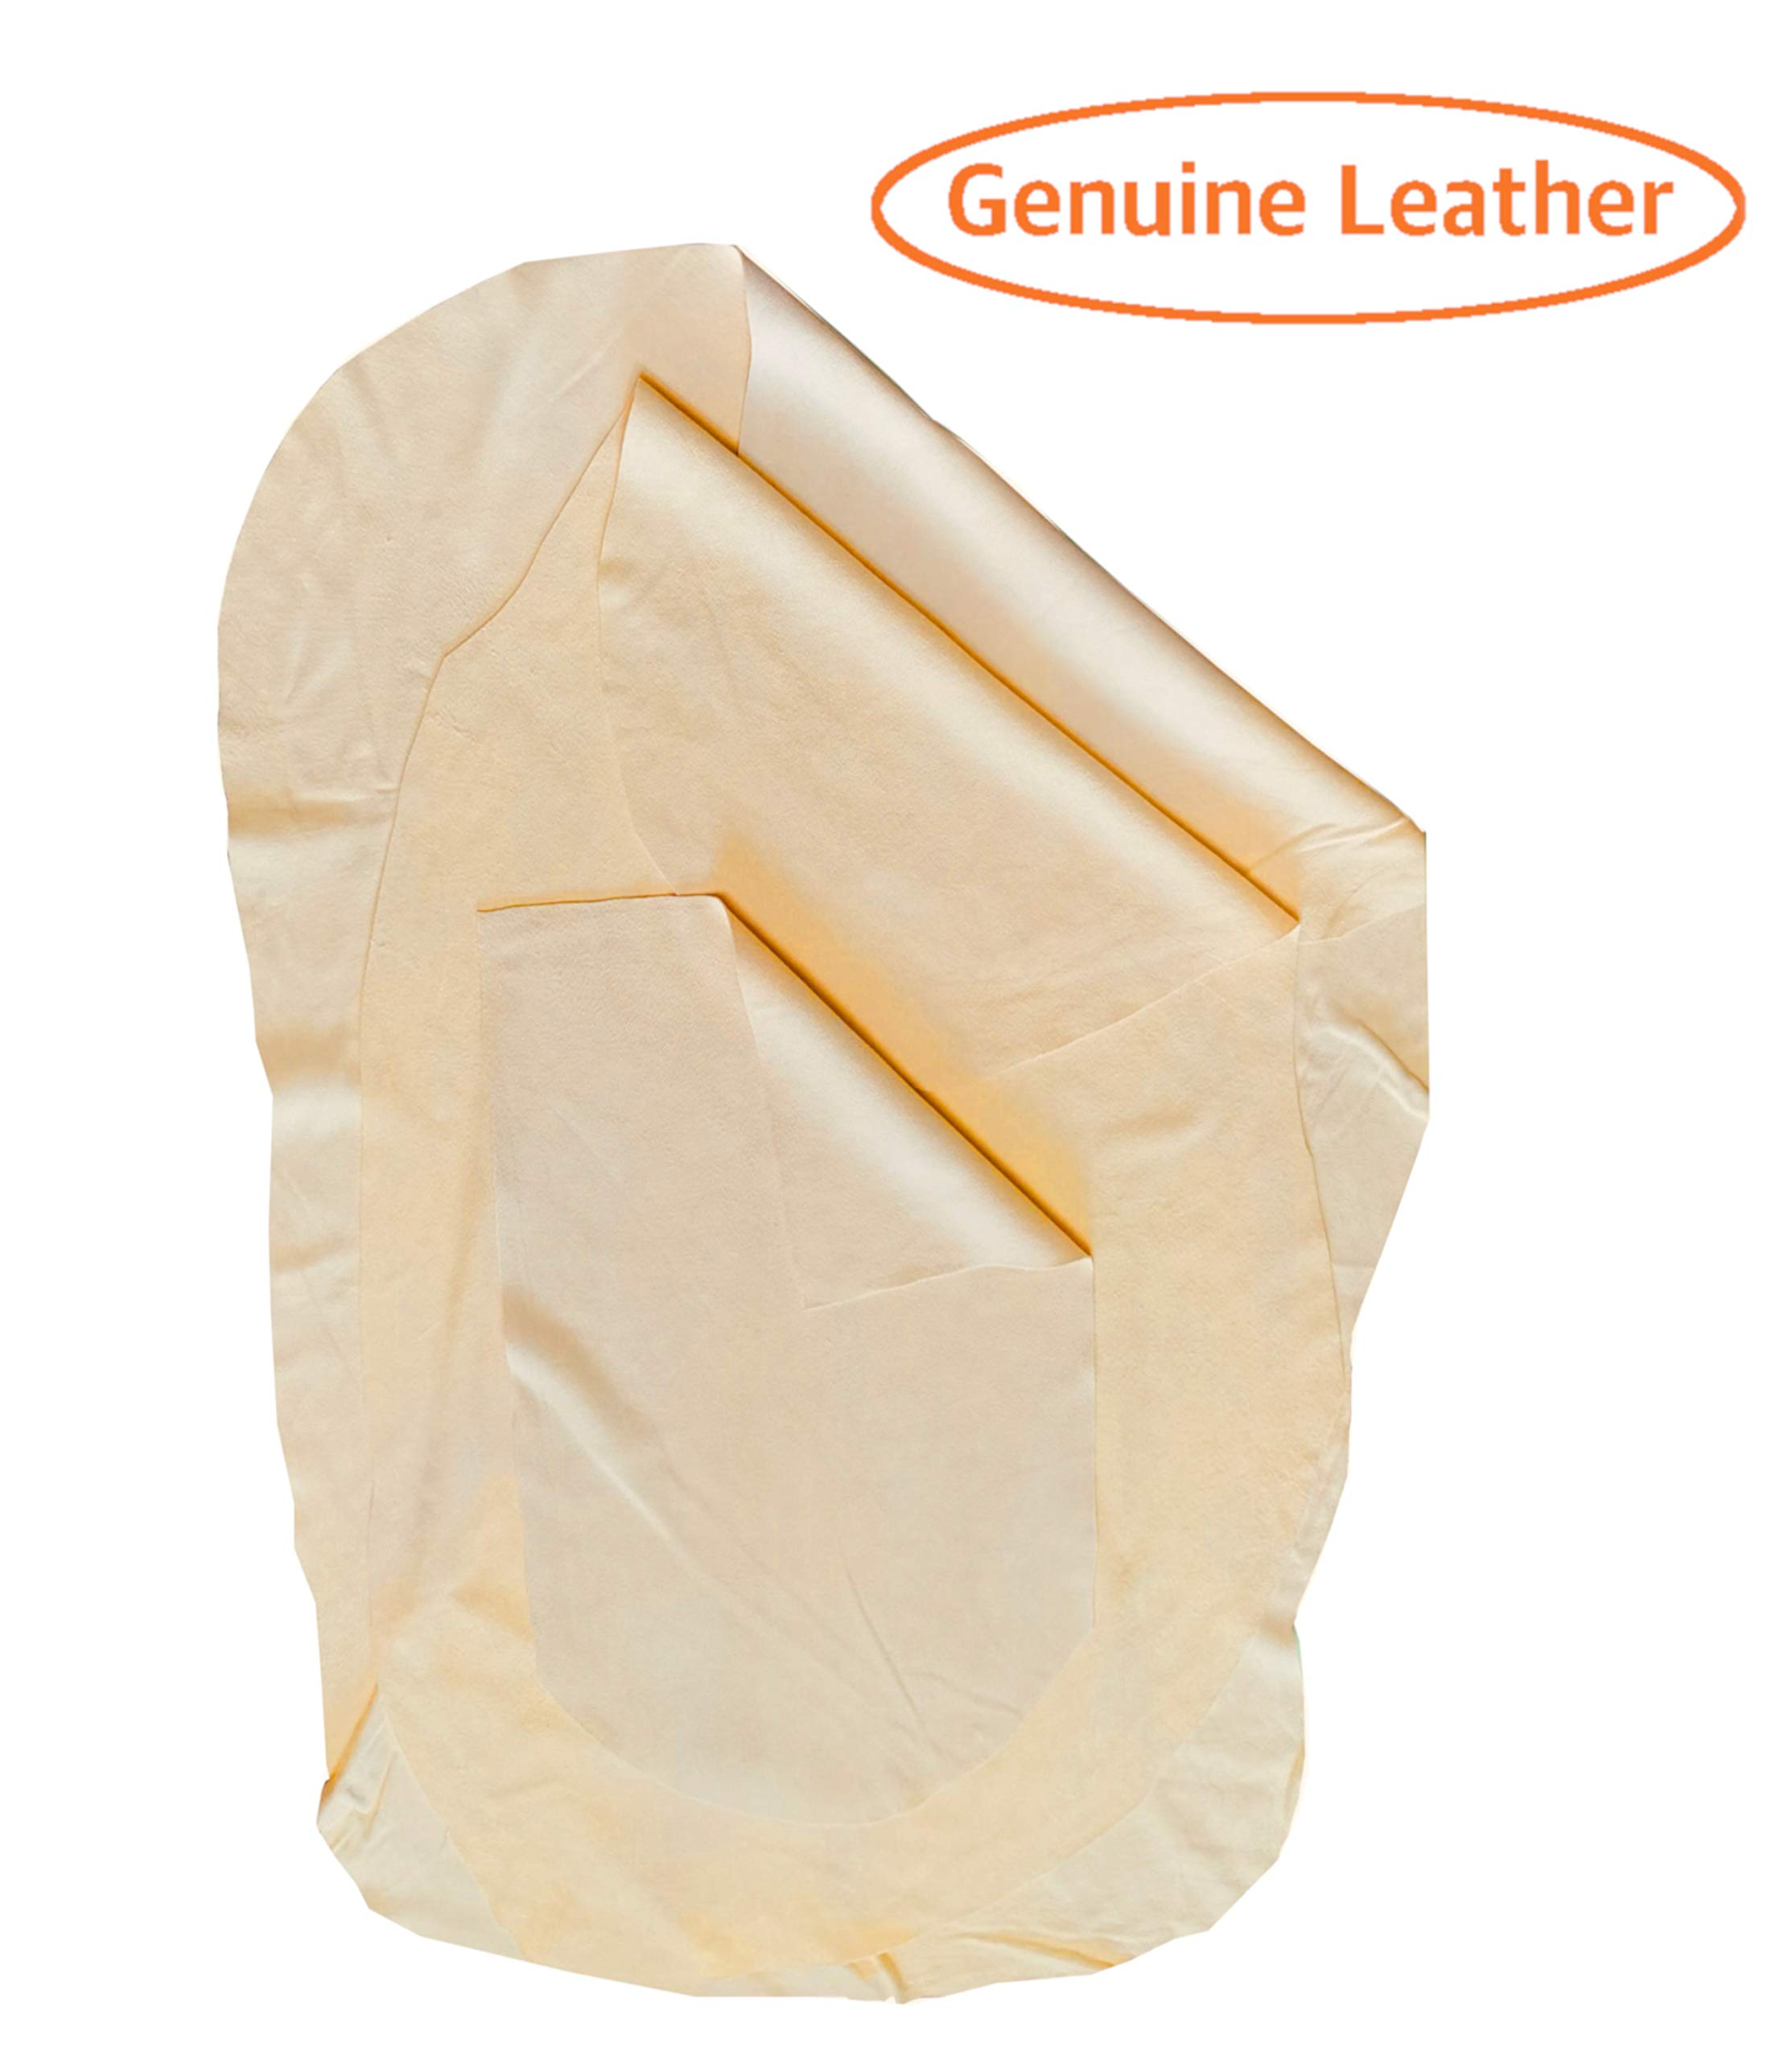 SHEEPSKIN ELITE Chamois Drying Cloth Car Drying Towel Real Leather Super Absorbent Fast Drying Natural Chamois Car Wash Cloth Accessory (3 Pieces: 3.5 sq ft; 2.5 sq ft; 1.25 sq ft)